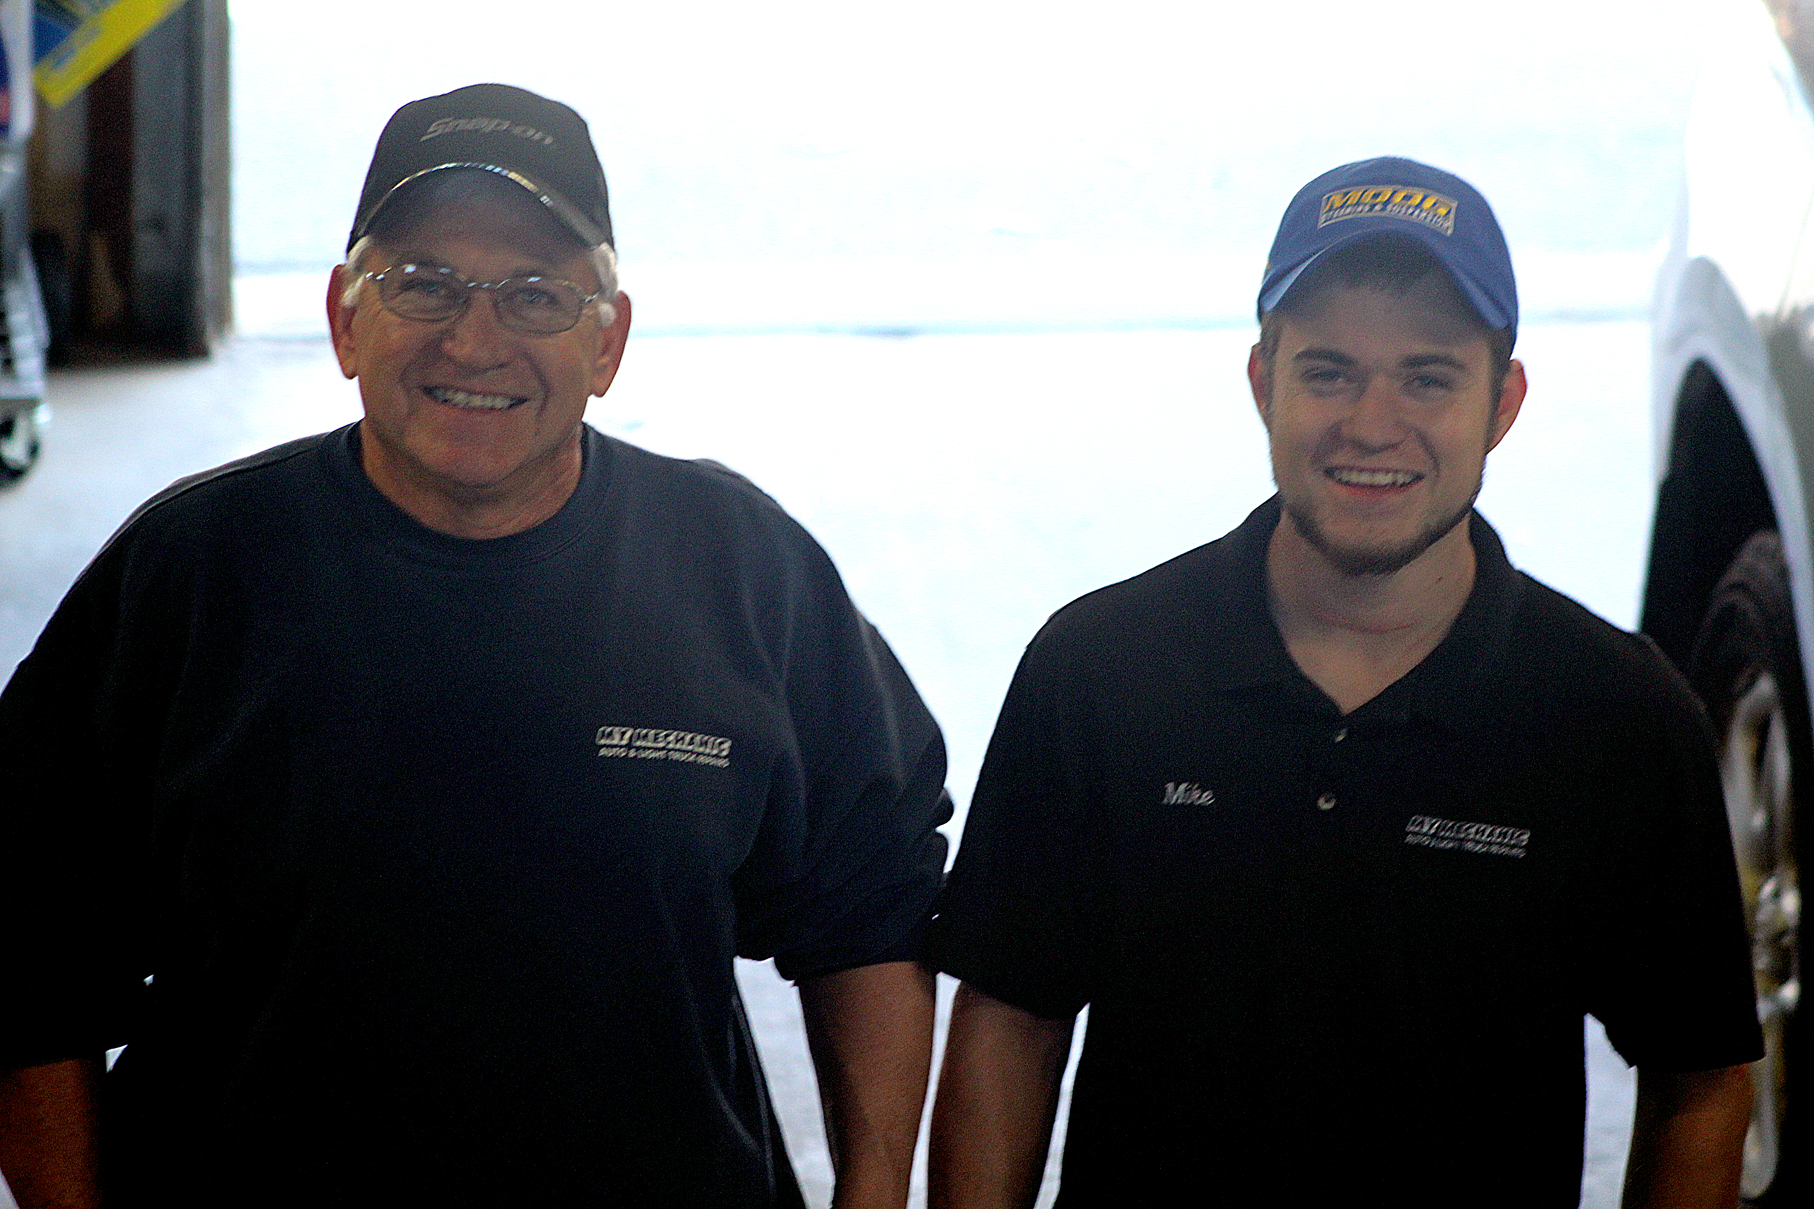 FAMILY BUSINESS  My Mechanic ownerSteve Faucherwith his son, ASE-Certified TechnicianMike Faucher.